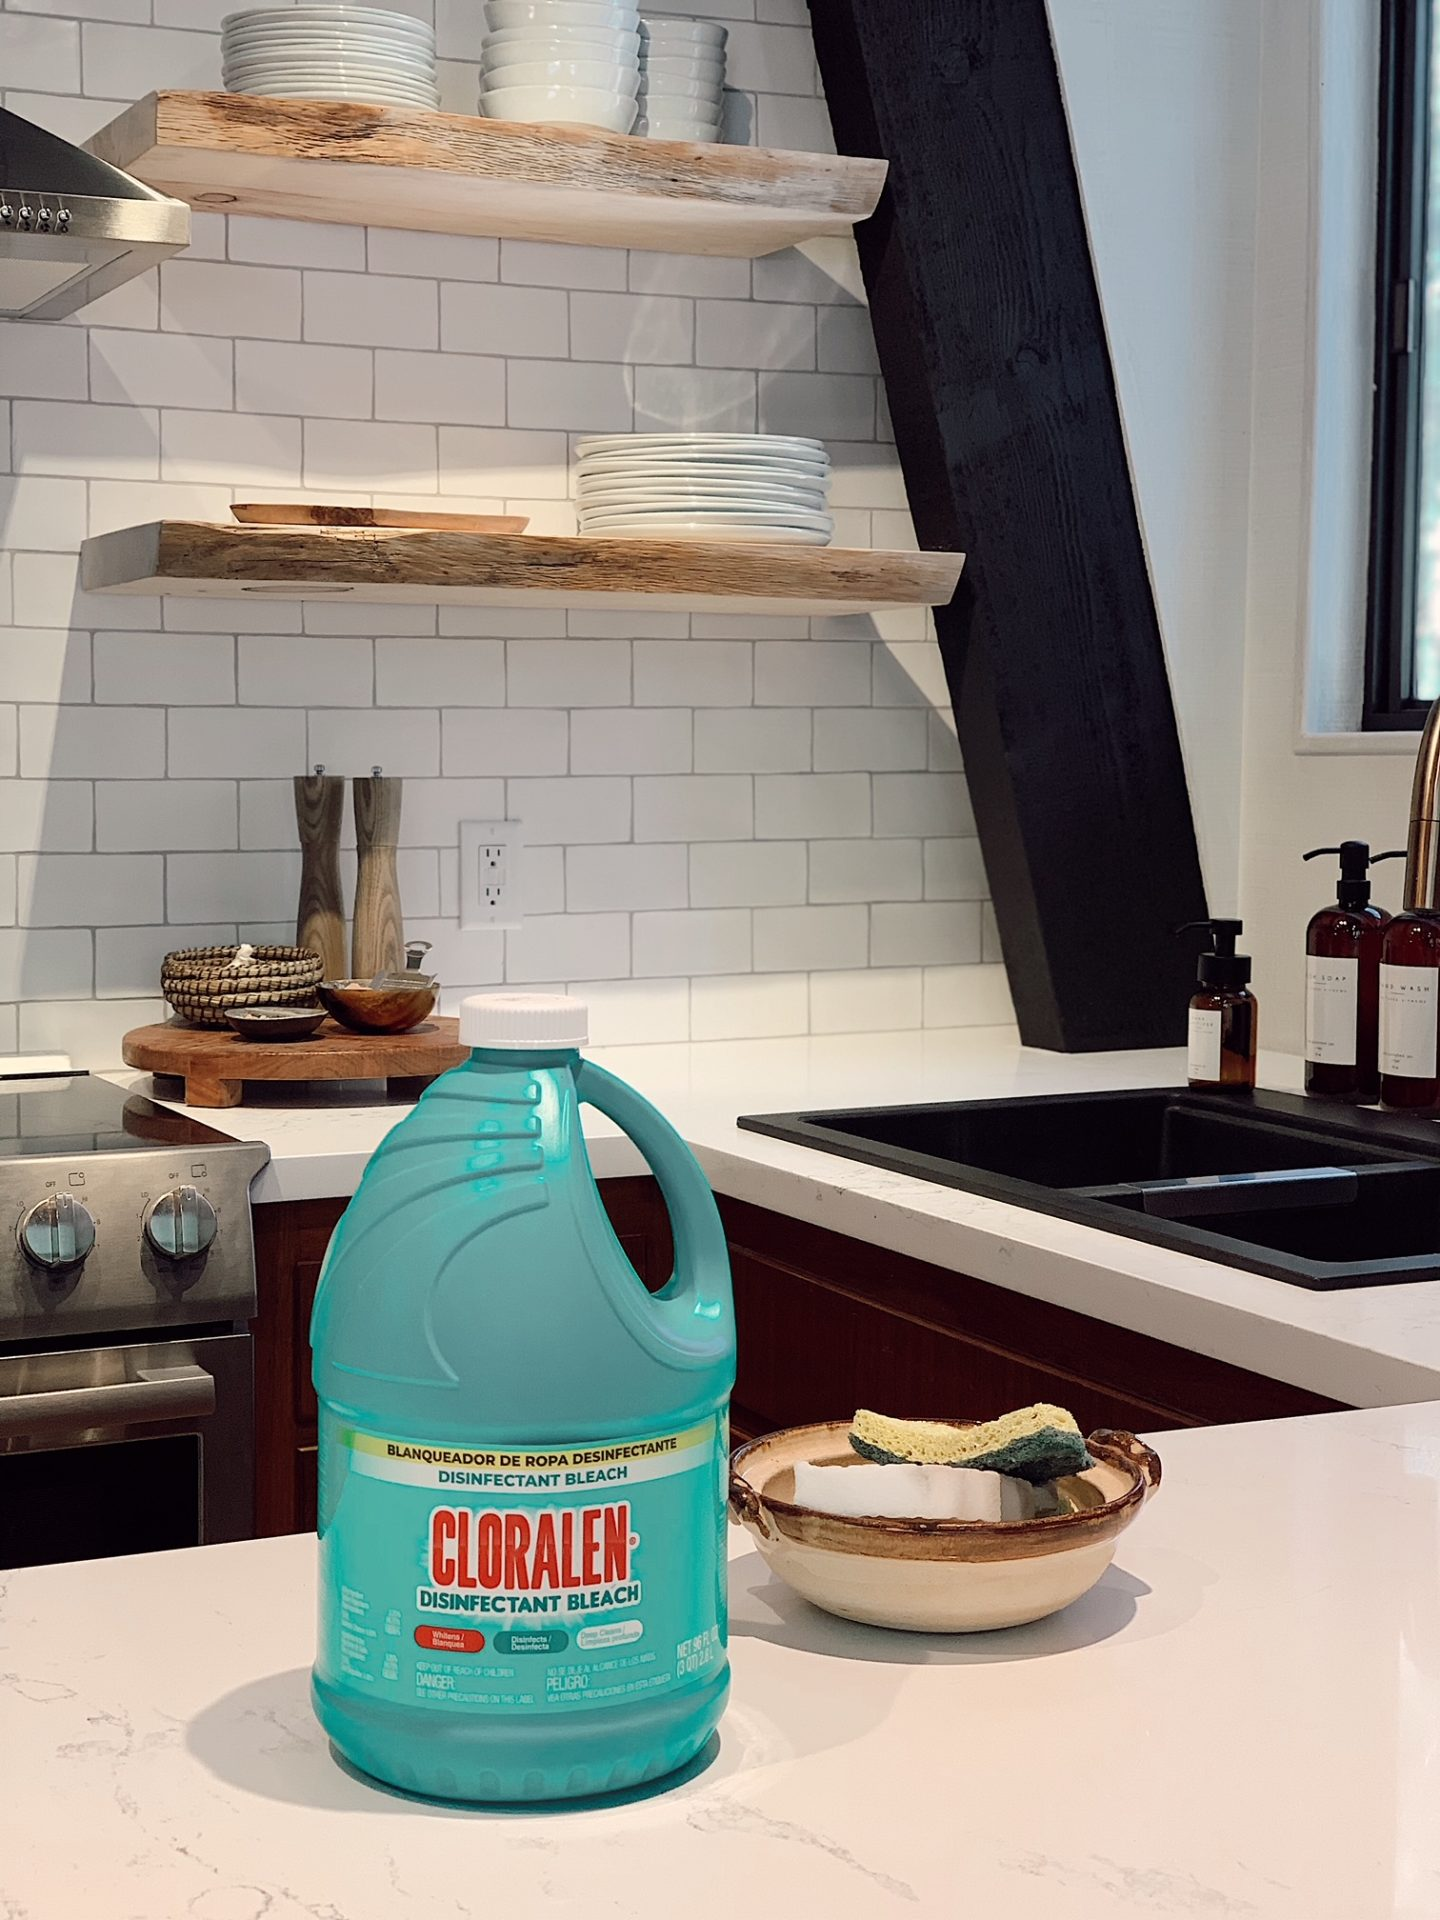 Cleaning with CLORALEN | Spring Cleaning Tips by popular San Francisco lifestyle blog, Just Add Glam: image of a bottle of Cloralen sitting on a kitchen counter next to a ceramic bowl filled with a sponge and magic eraser.